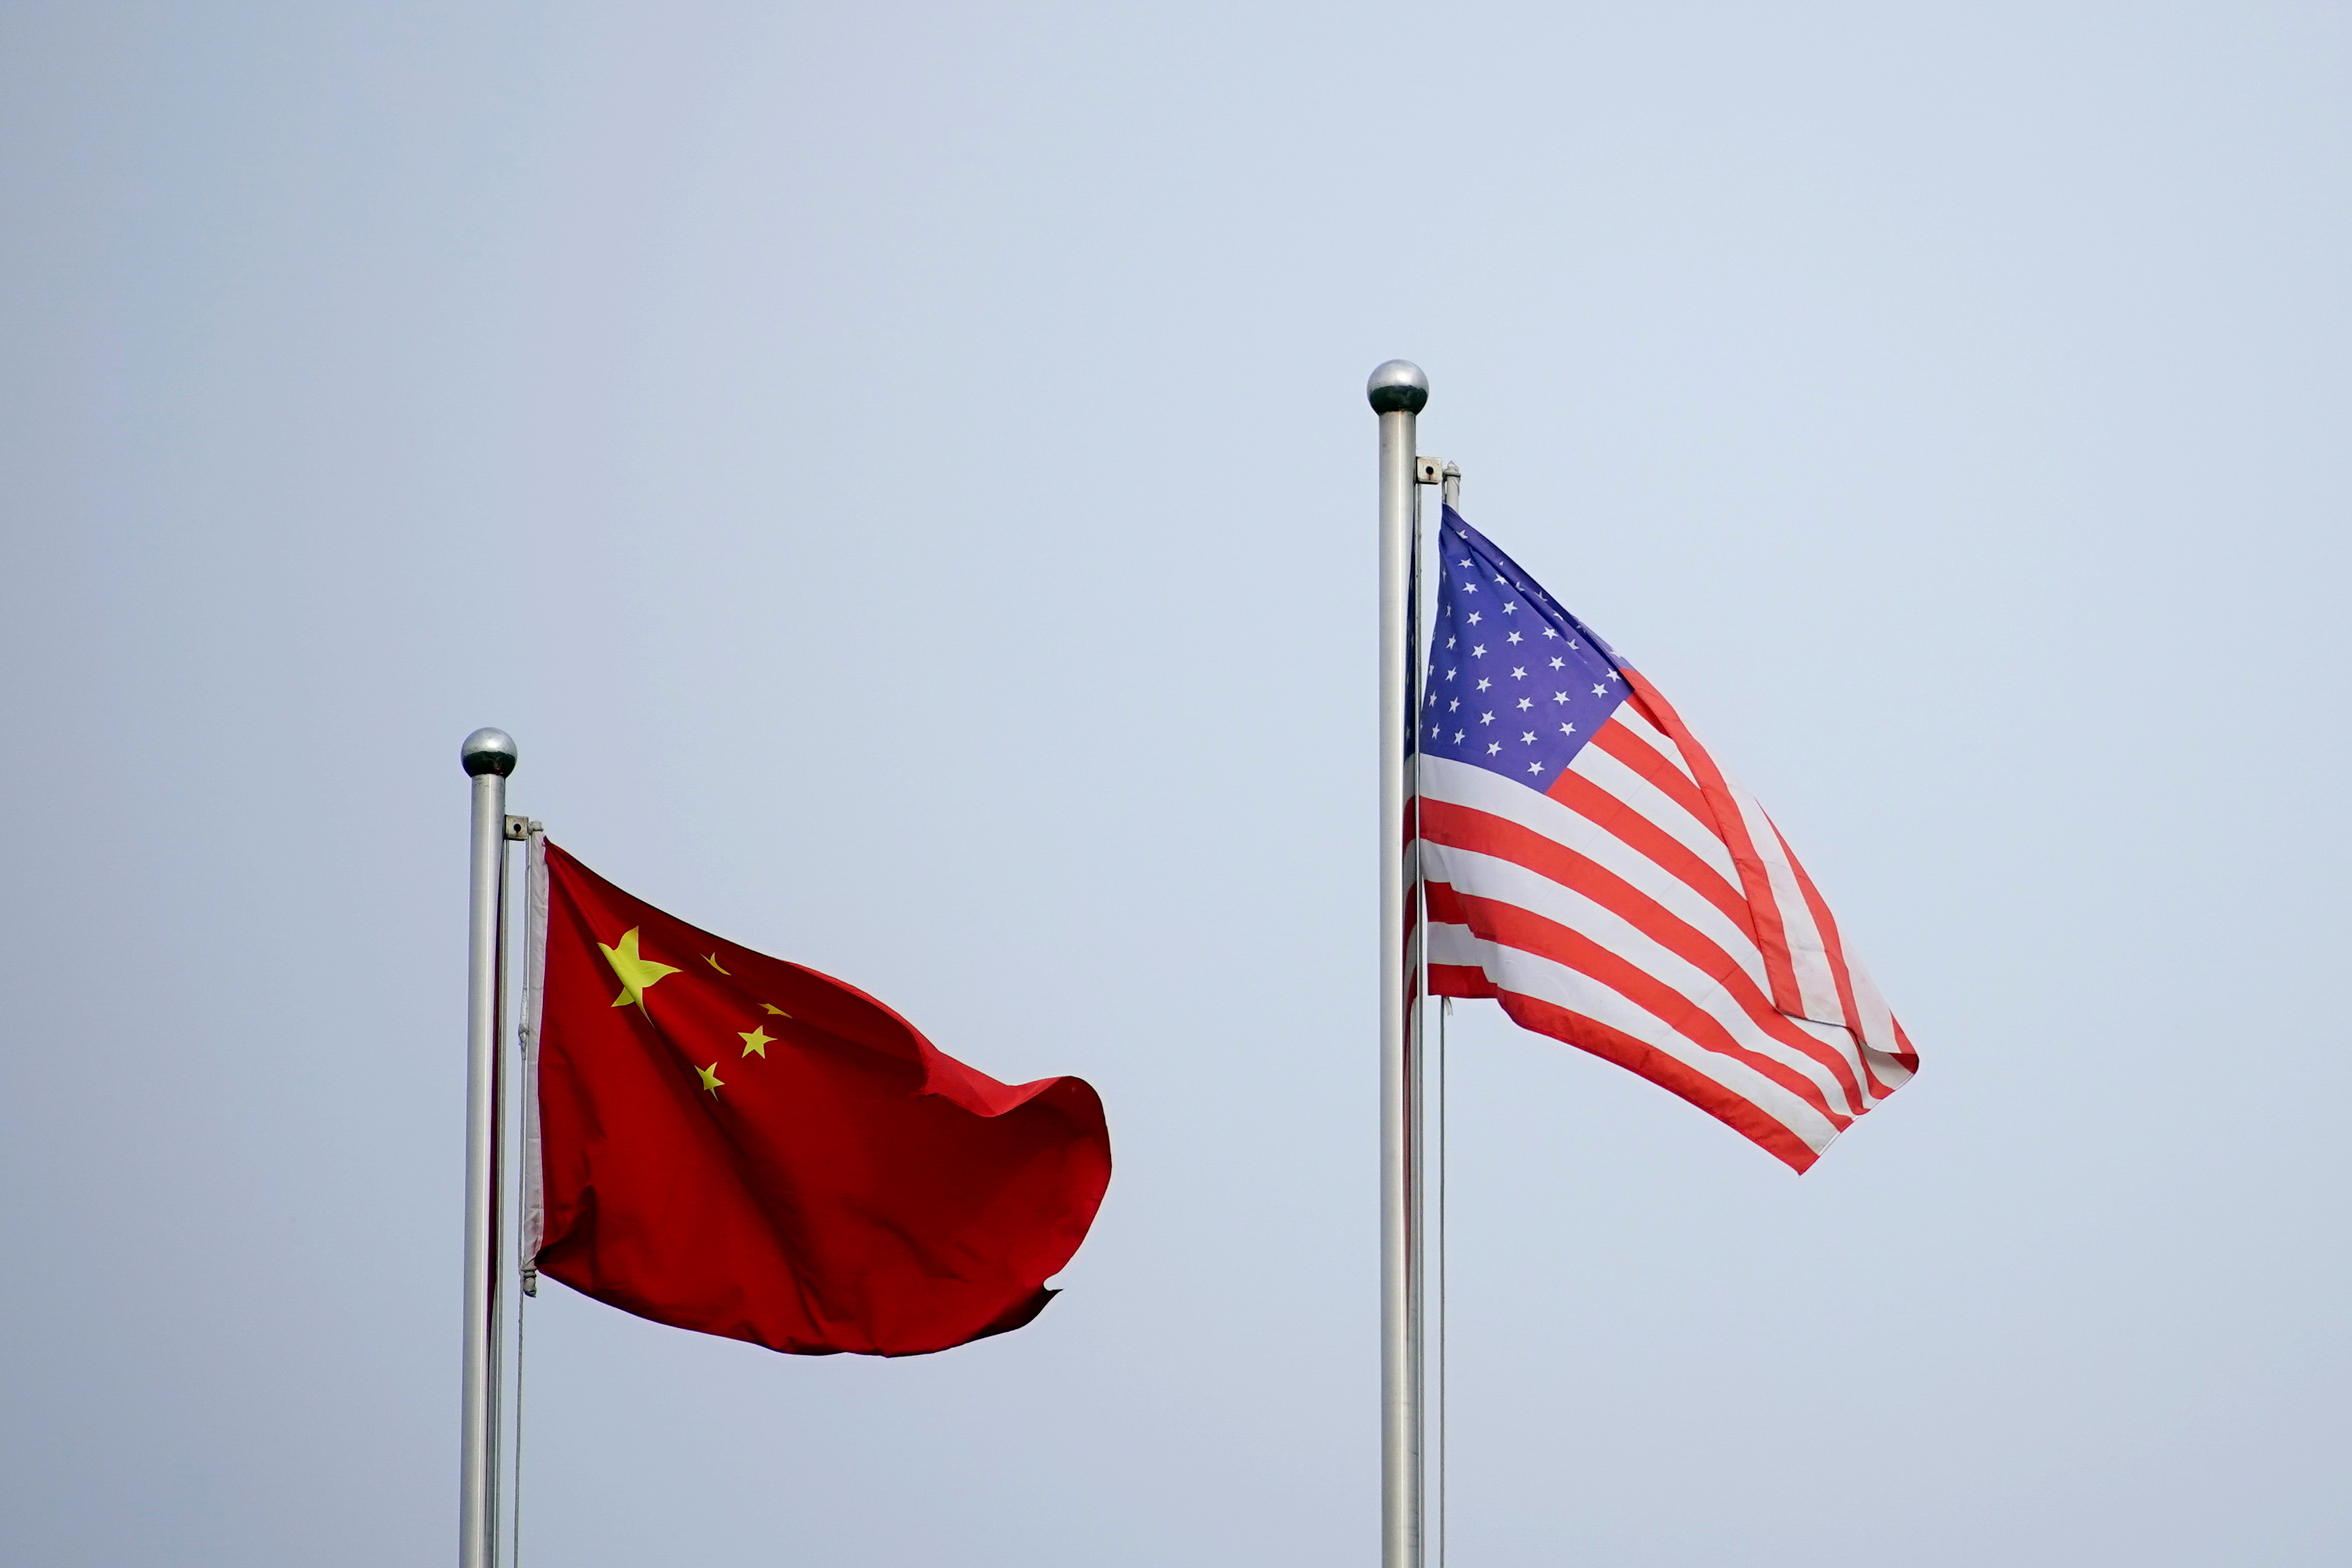 Chinese and U.S. flags flutter outside a company building in Shanghai, China April 14, 2021. REUTERS/Aly Song//File Photo